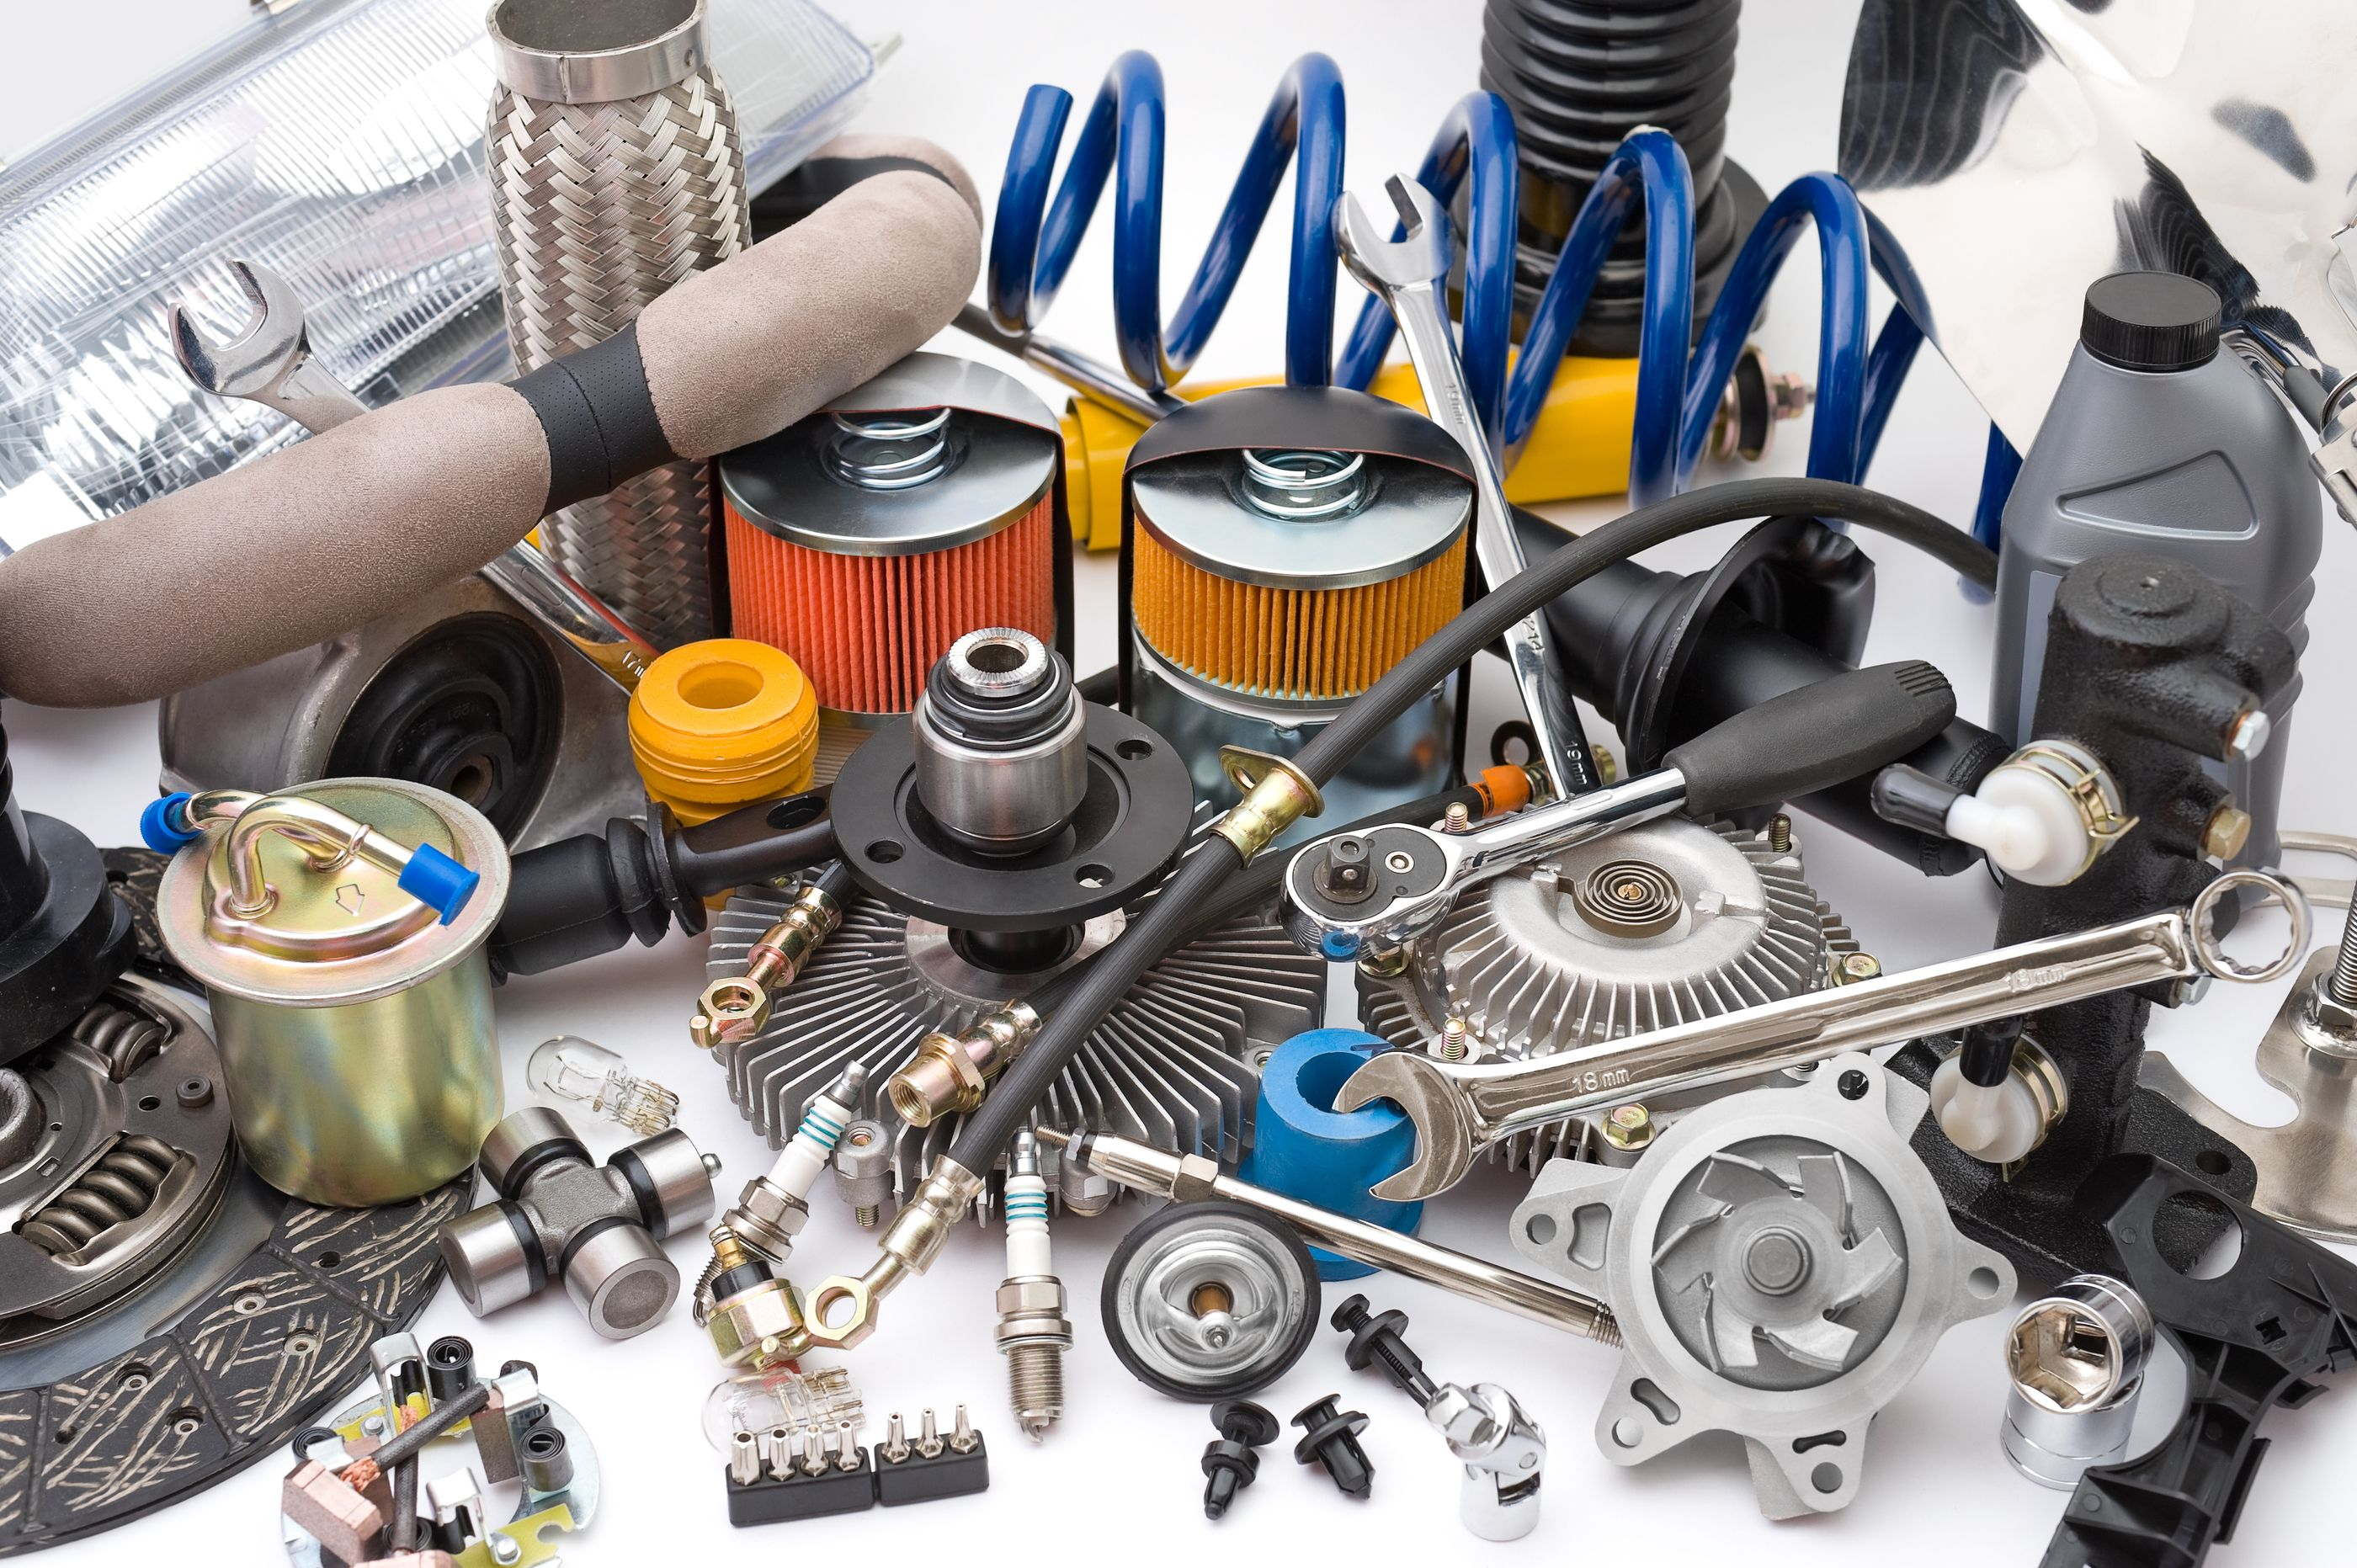 BUY THE USED AND GENUINE CAR PARTS ONLINE UK www